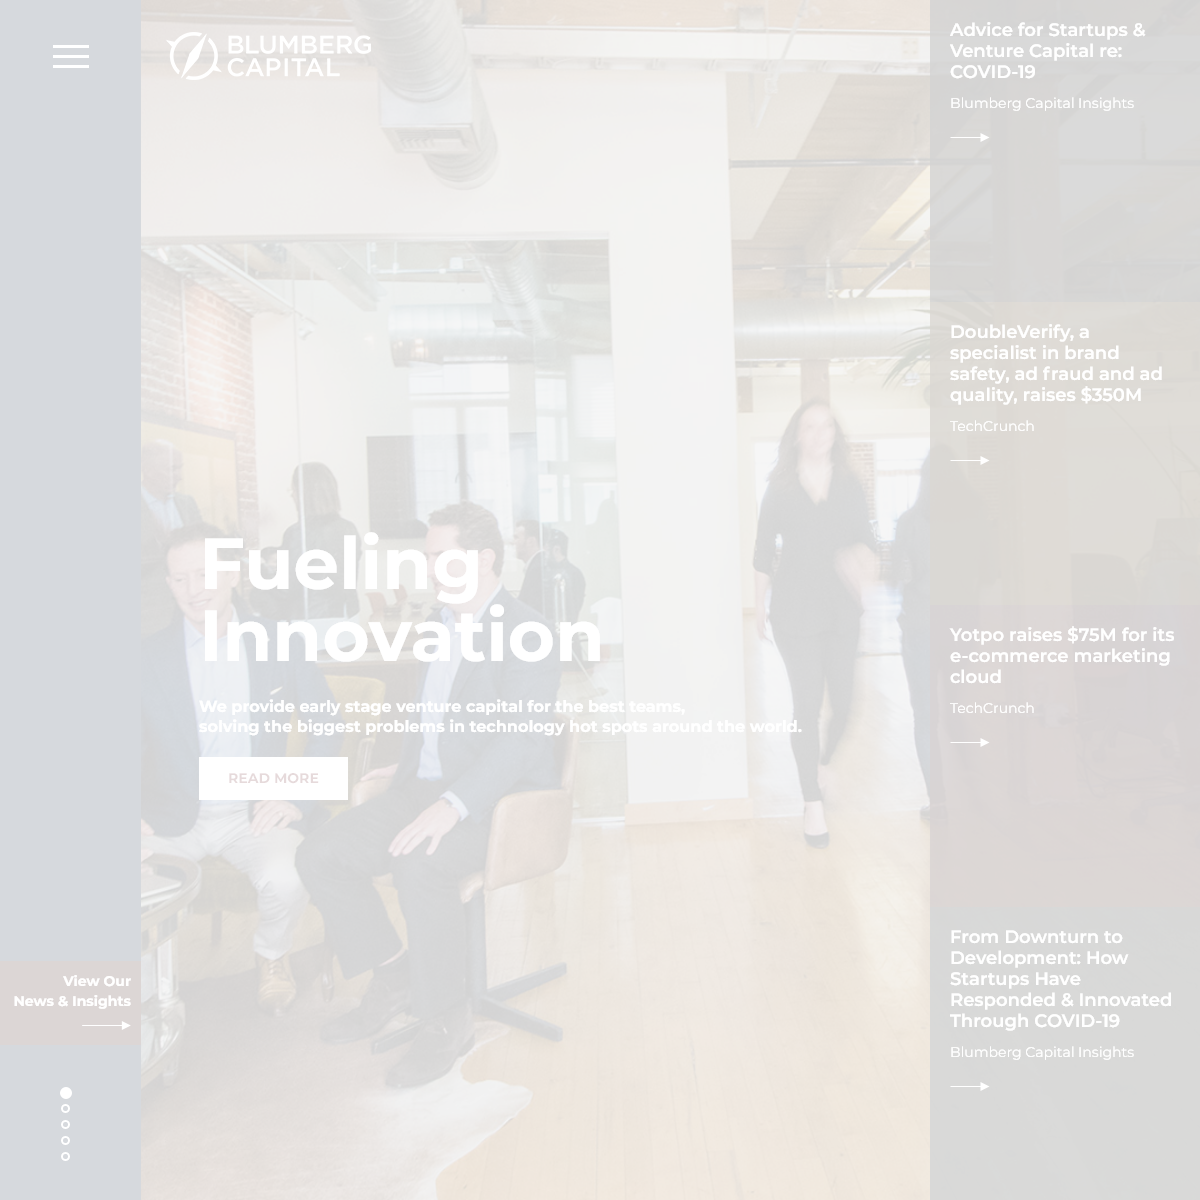 Early Stage Venture Capital Firm - Blumberg Capital